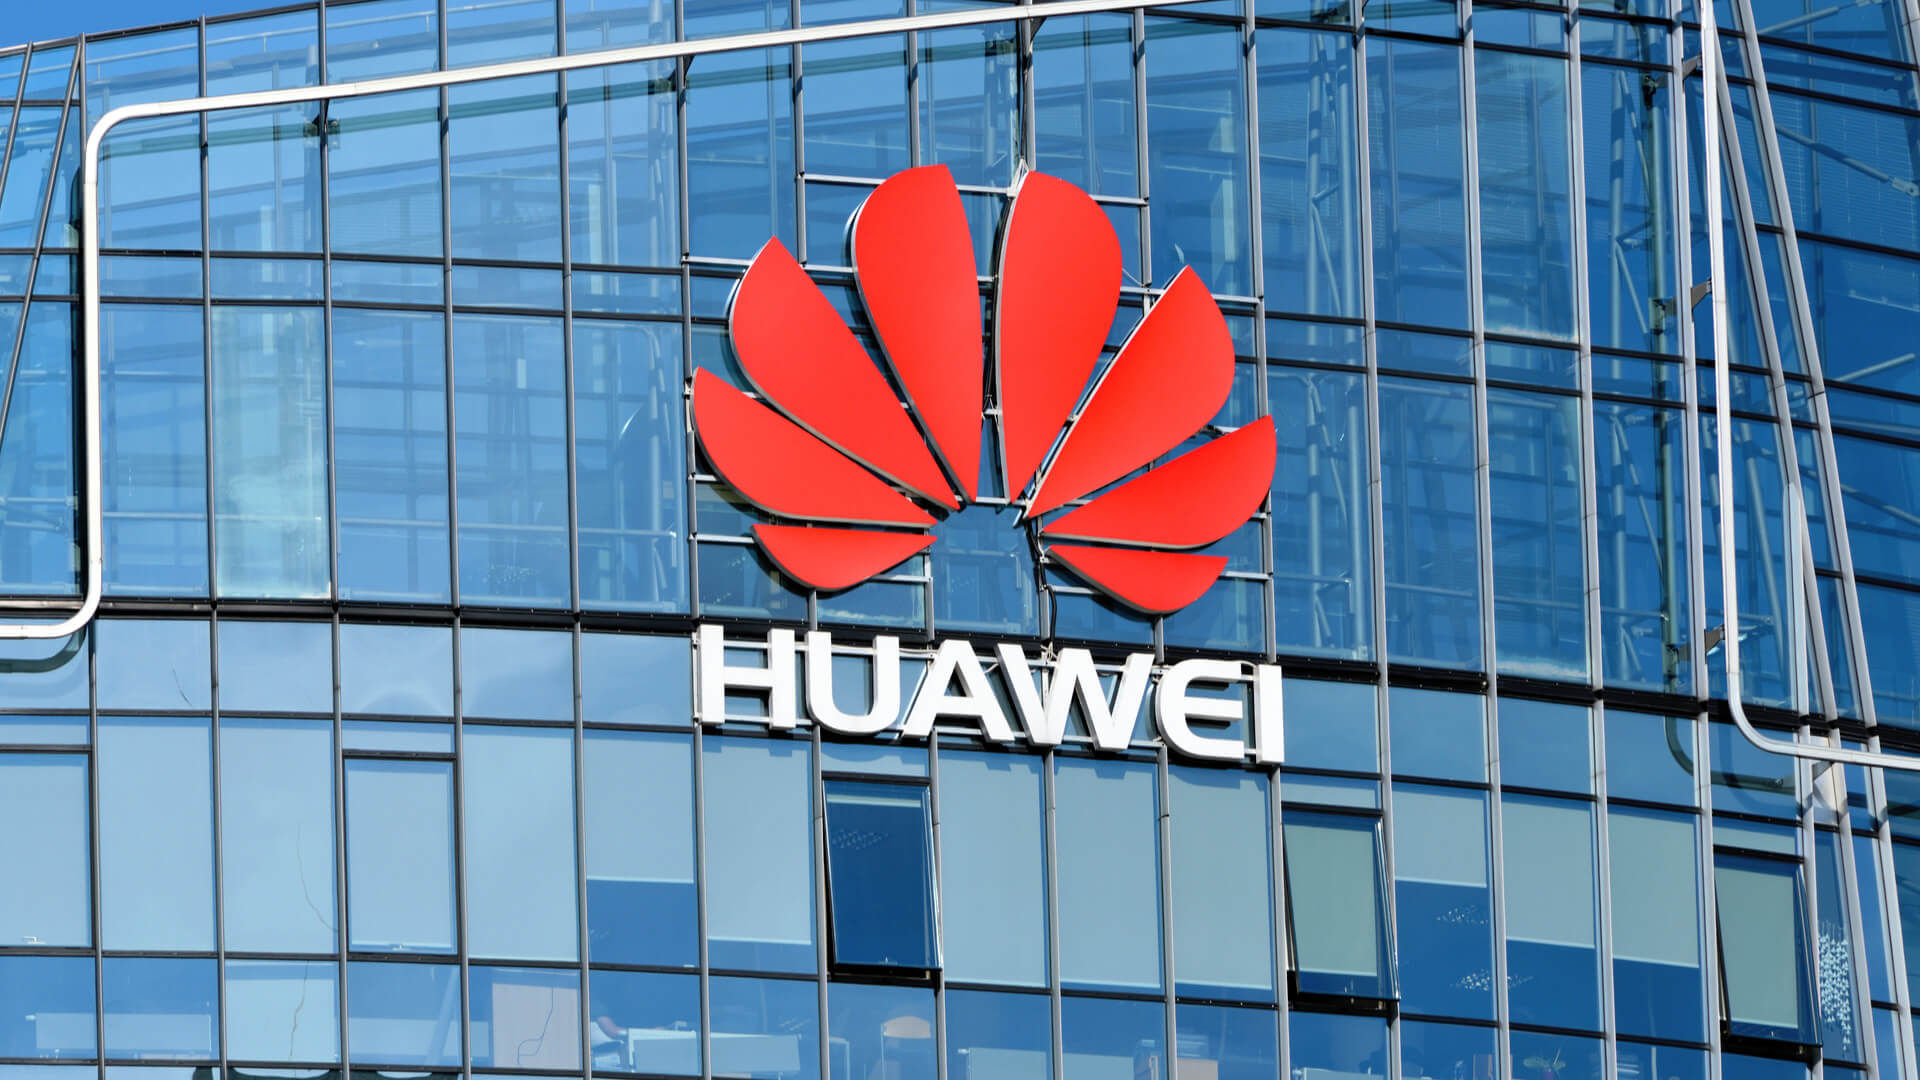 IEEE bans Huawei employees from peer-reviewing and editing papers